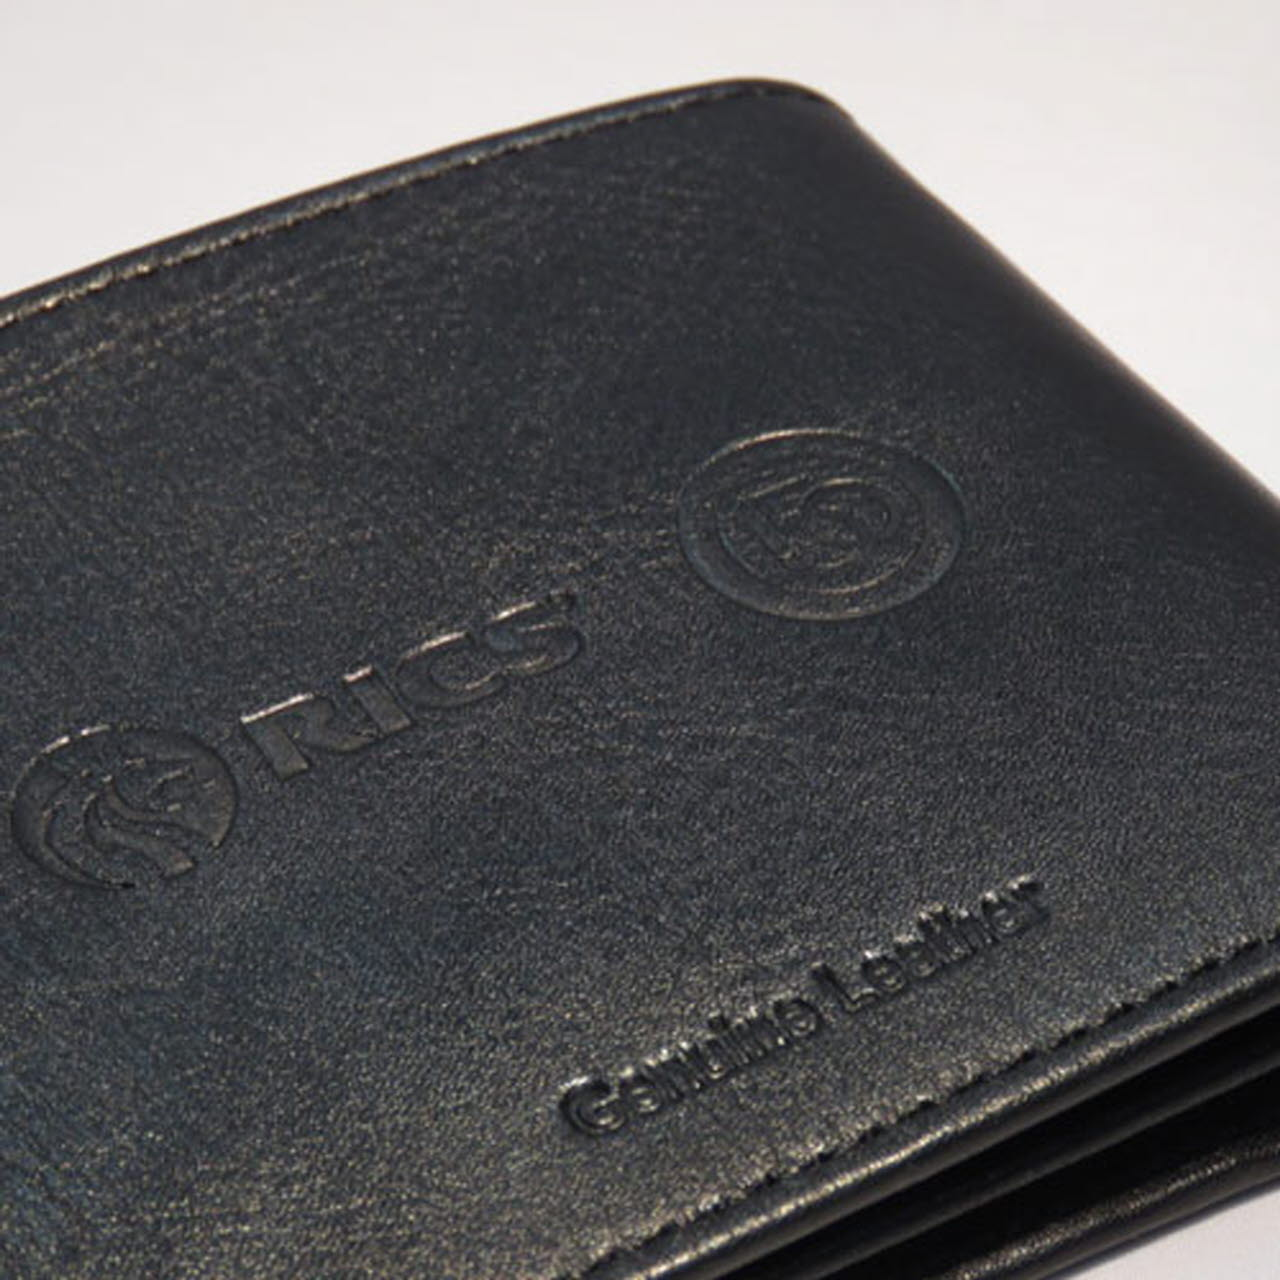 RICS Leather Wallet